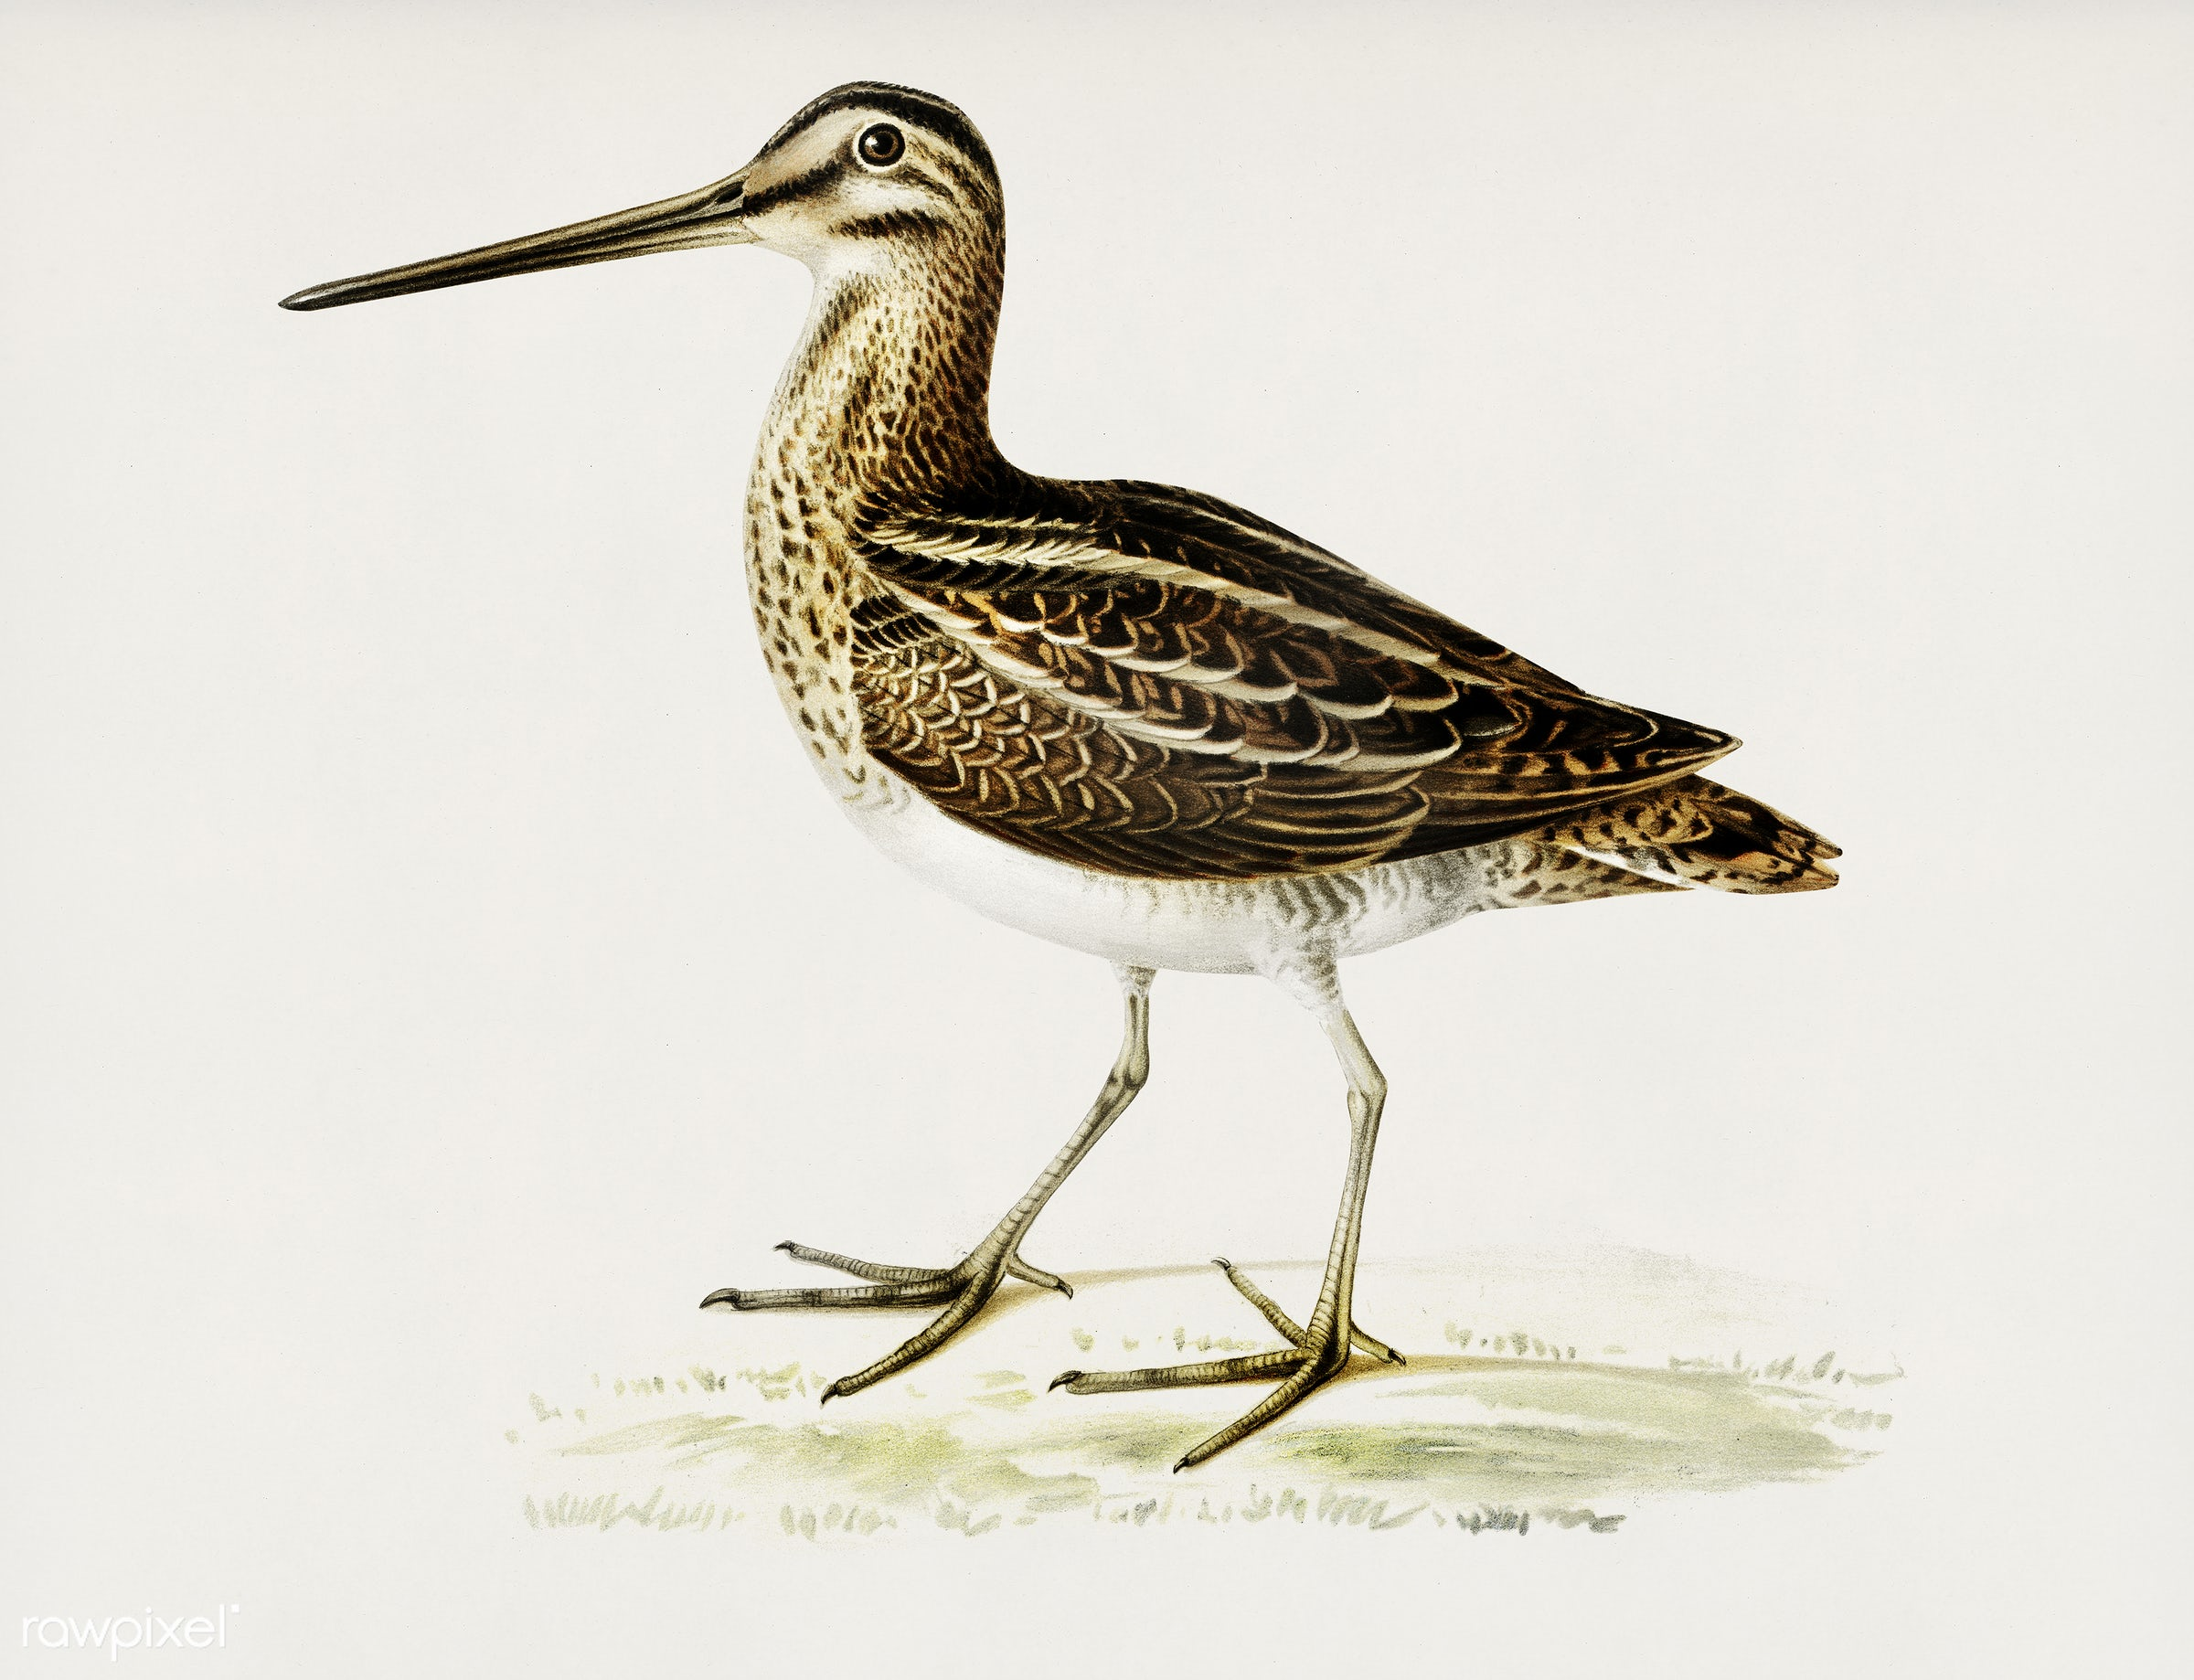 Common snipe (capella gallinago) illustrated by the von Wright brothers. Digitally enhanced from our own 1929 folio version...